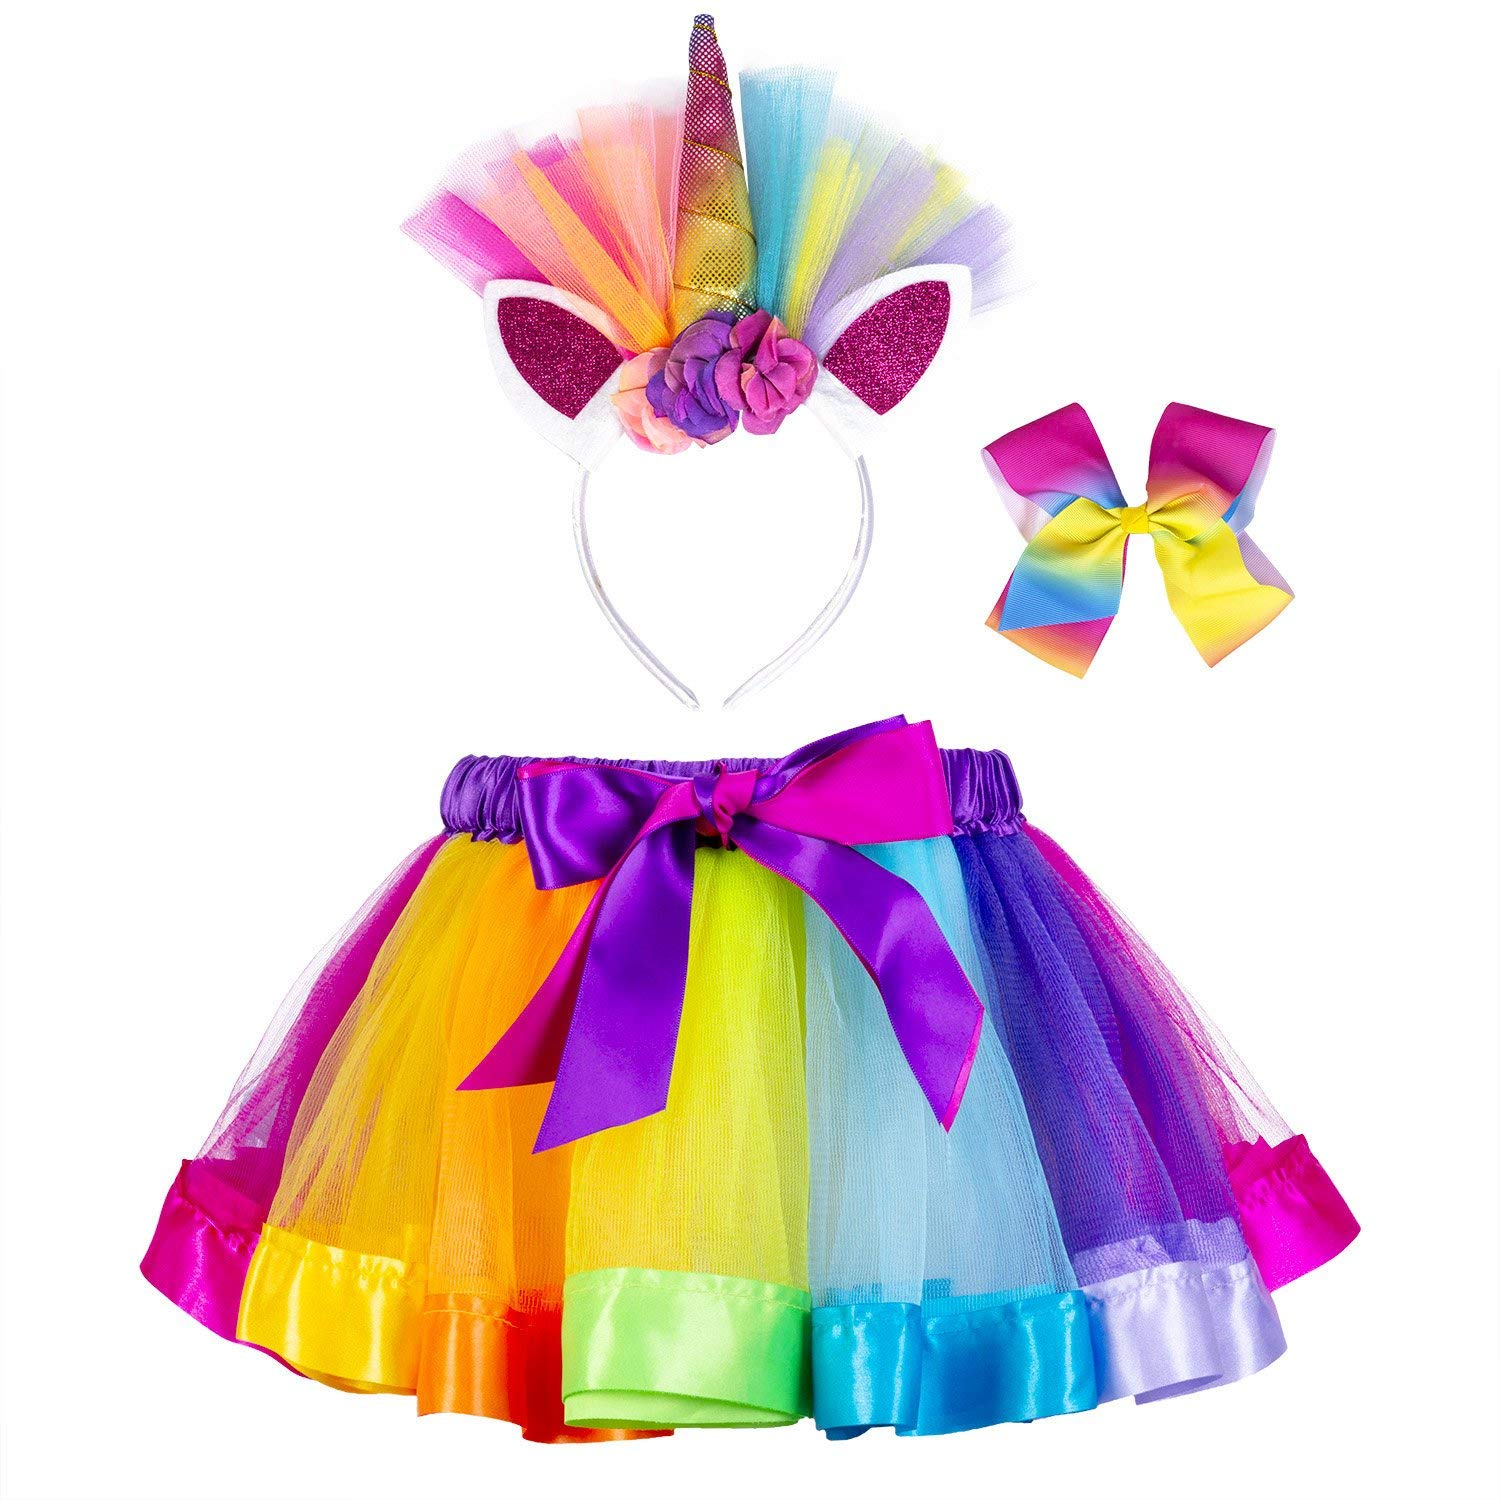 17a20969ce Get Quotations · Little Girls Layered Unicorn Rainbow Tutu Skirt Dress up  with Headband Hair Bows